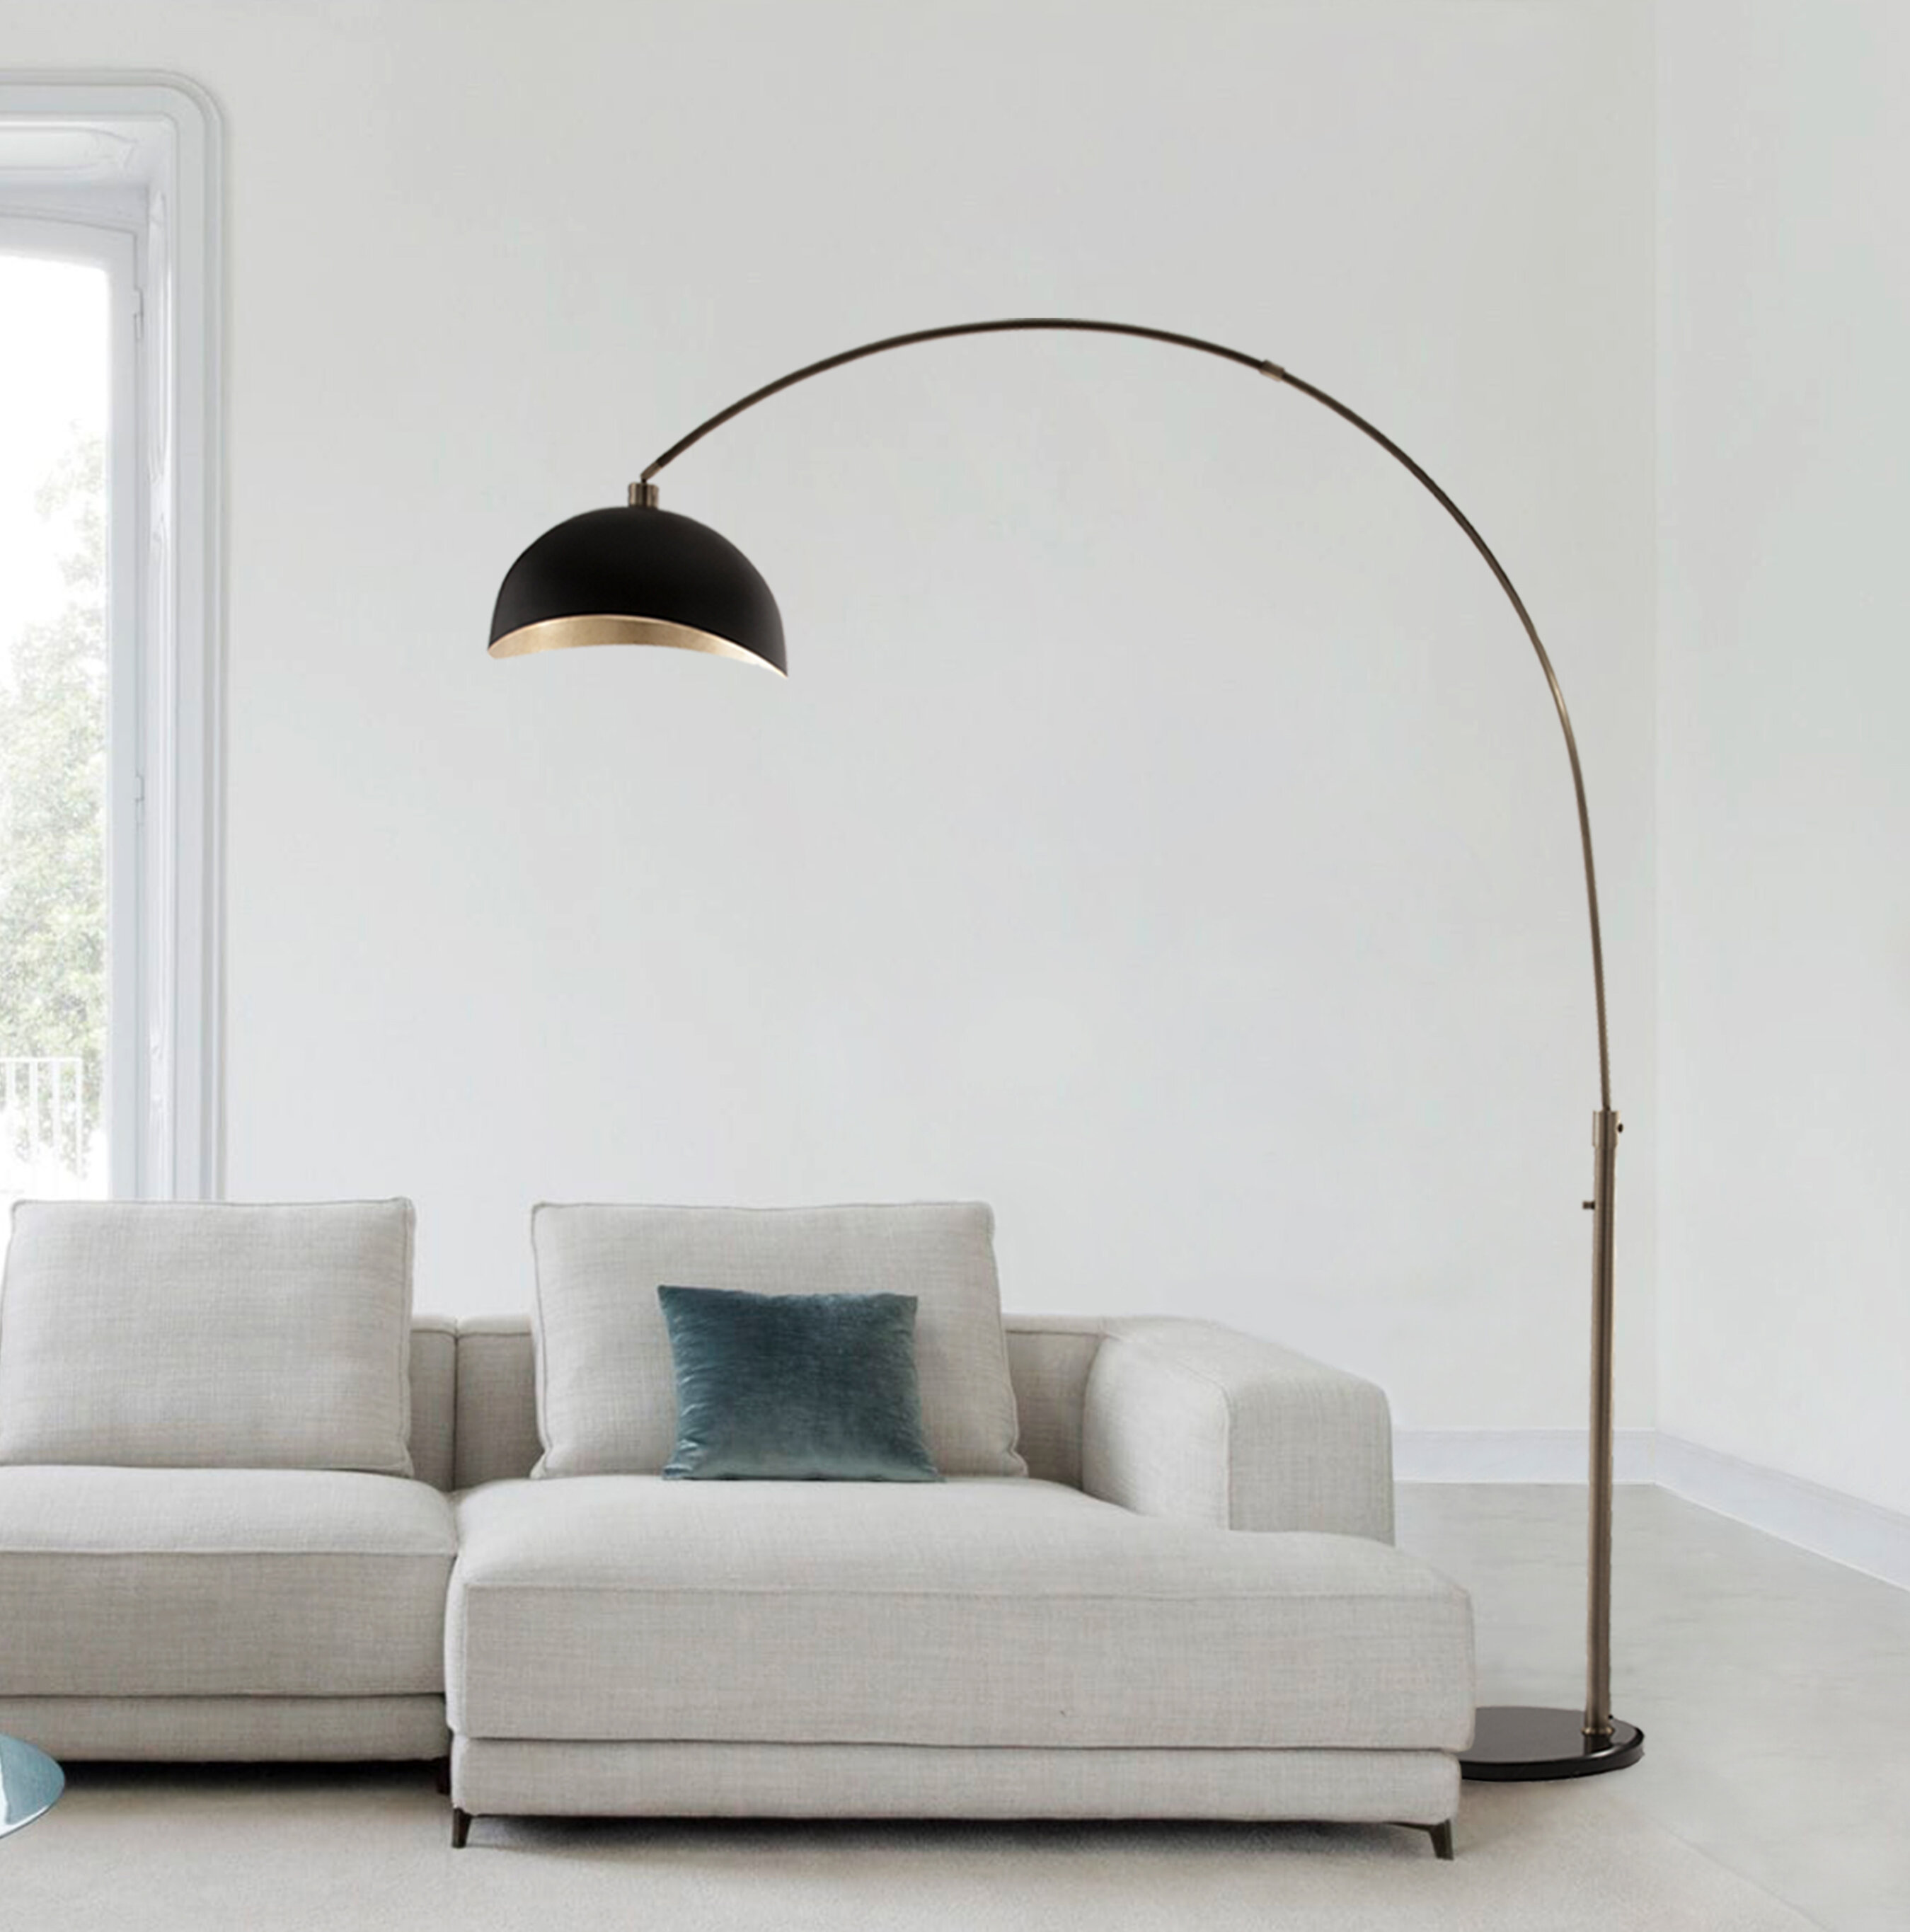 Pleasant Channell 92 Arched Floor Lamp Ibusinesslaw Wood Chair Design Ideas Ibusinesslaworg